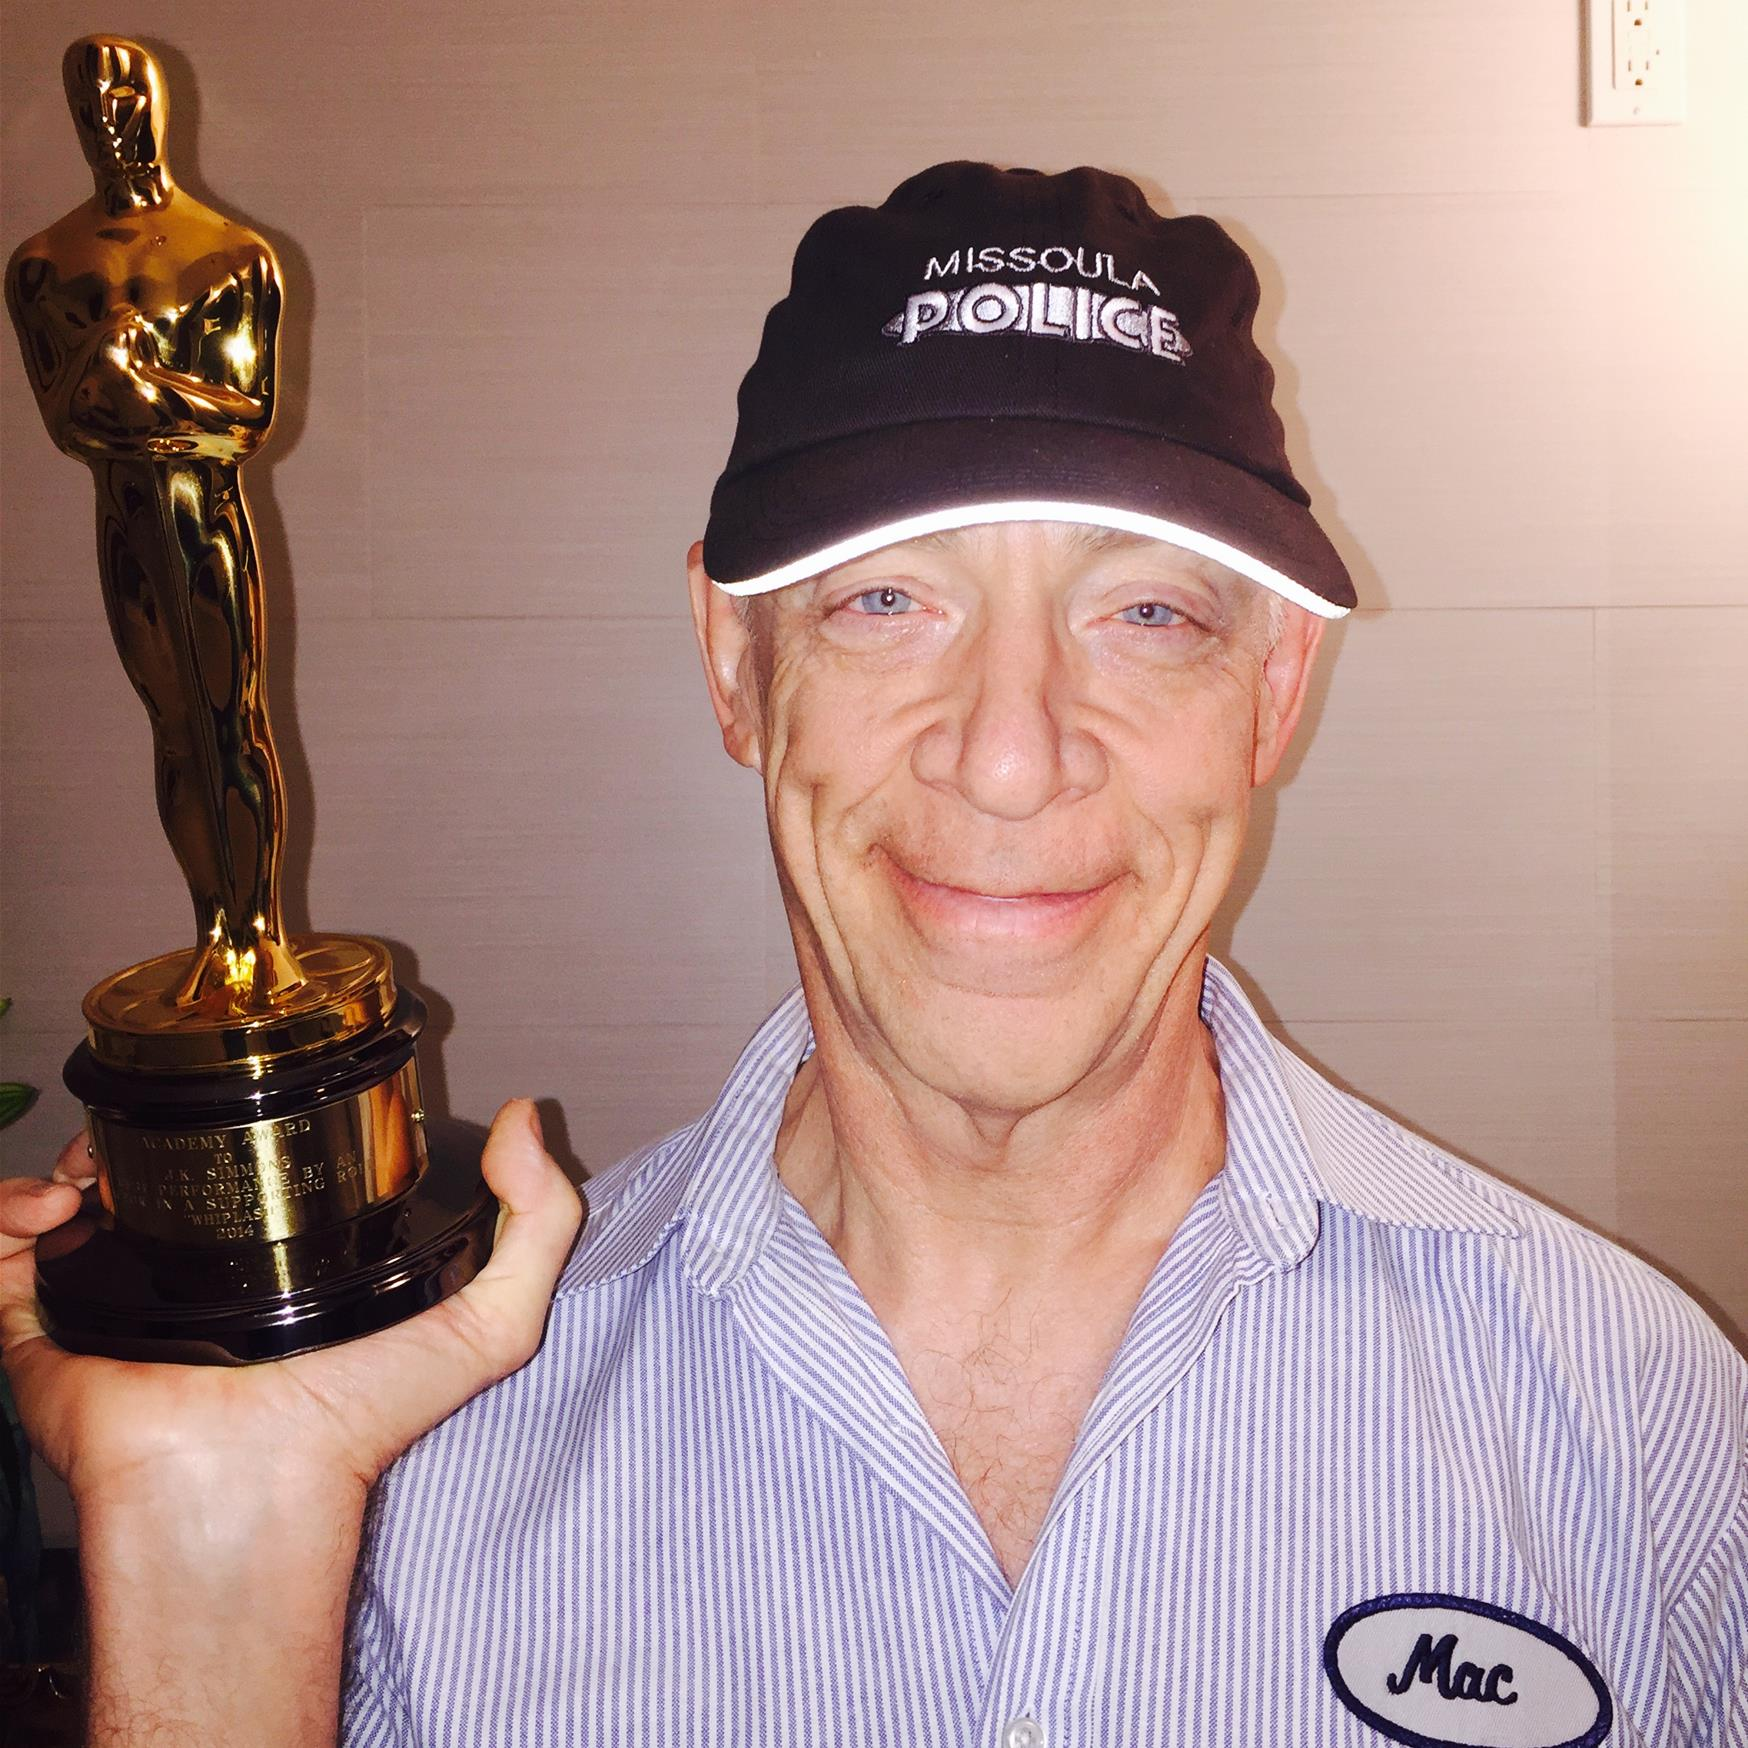 J.K. Simmons showing off his MPD hat. And his Oscar.